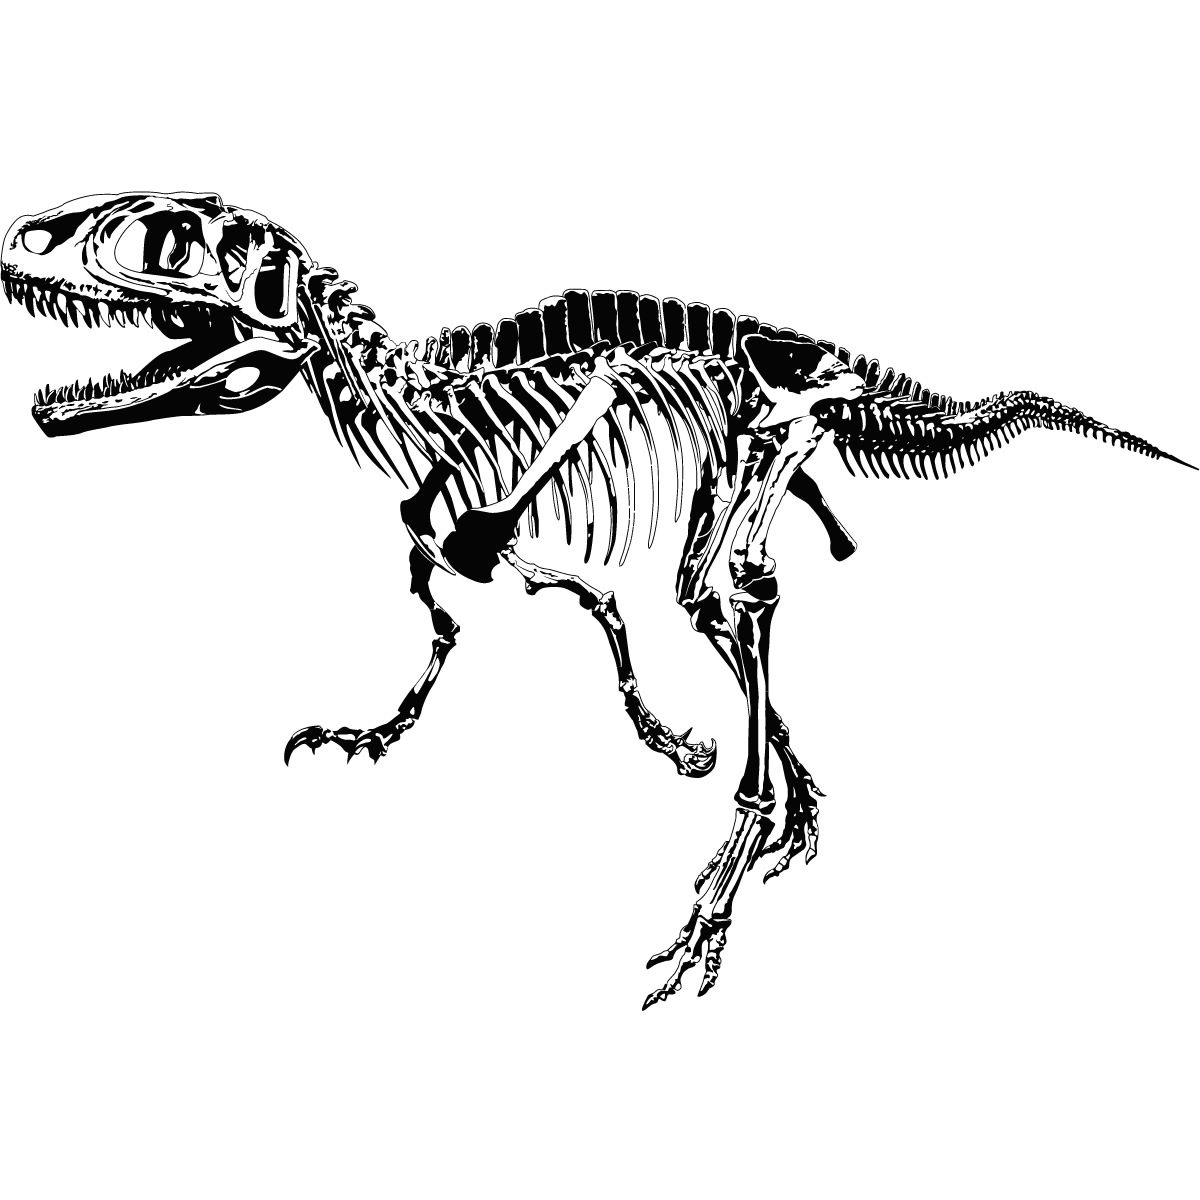 Details About T Rex Skeleton Dinosaurs Wall Art Sticker